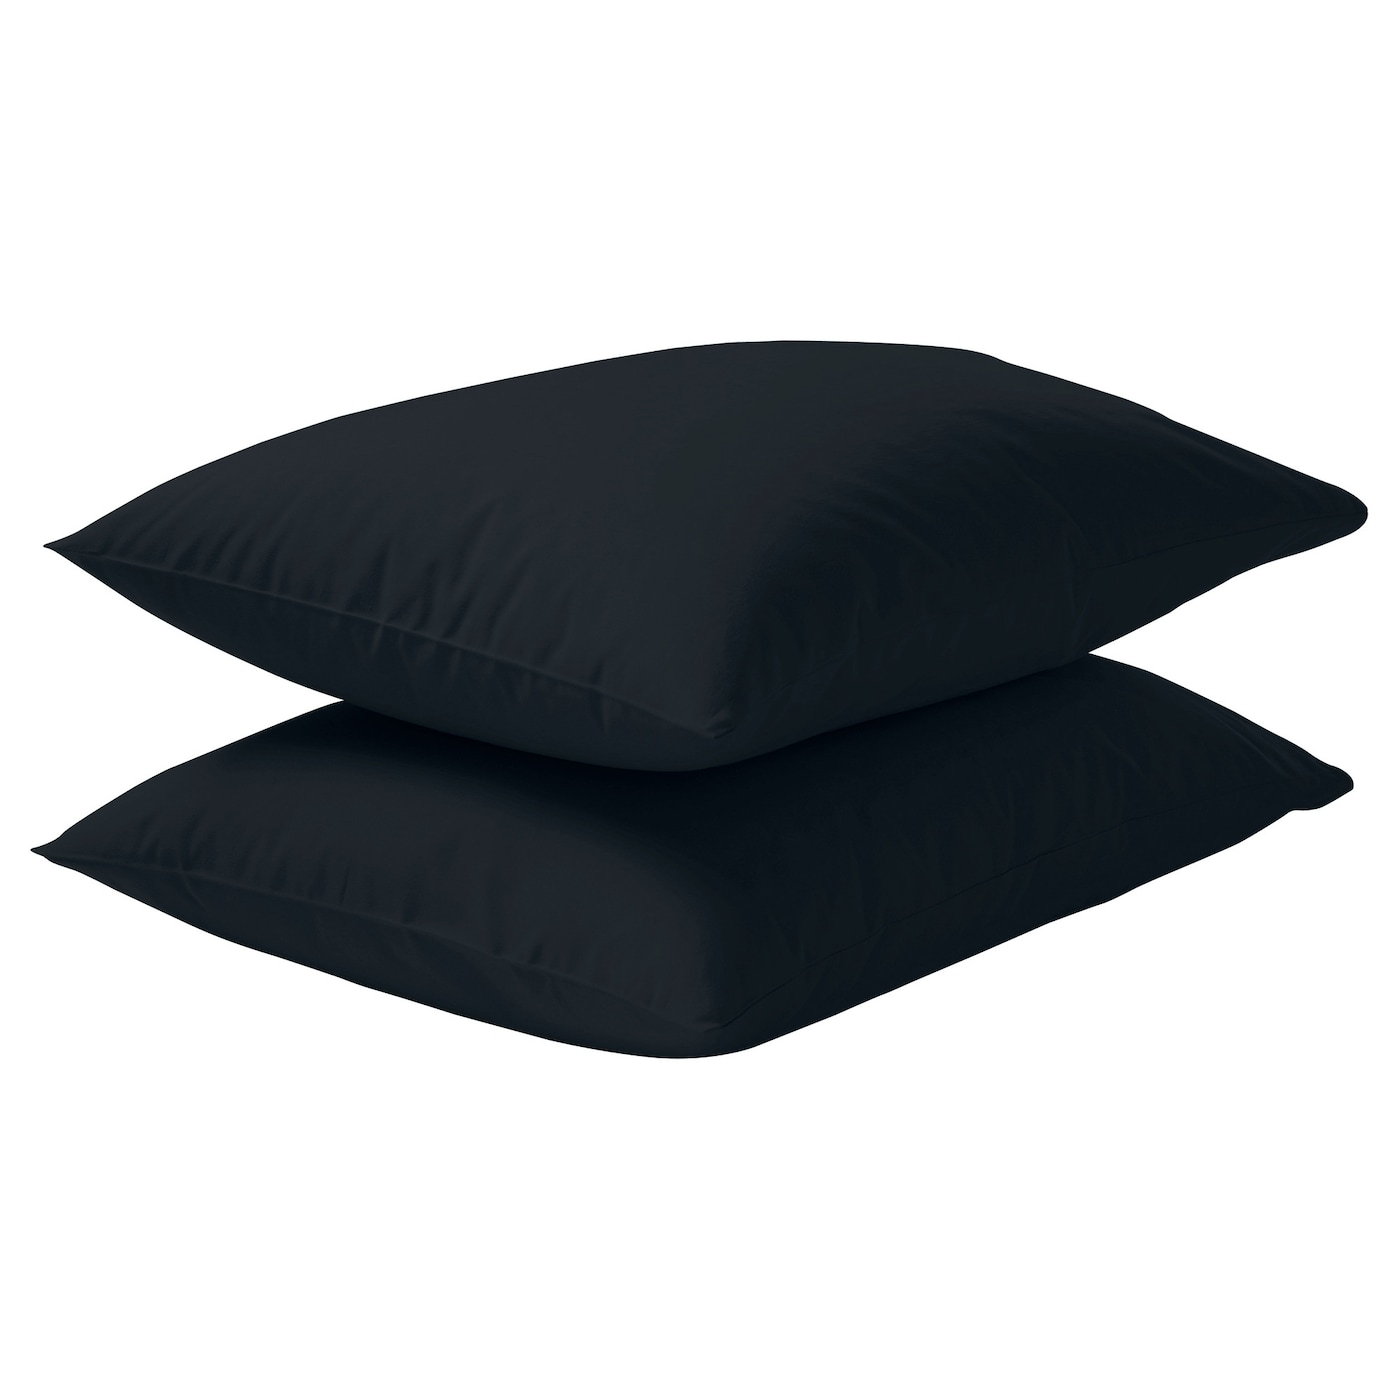 IKEA DVALA pillowcase Pure cotton that feels soft and nice against your skin.